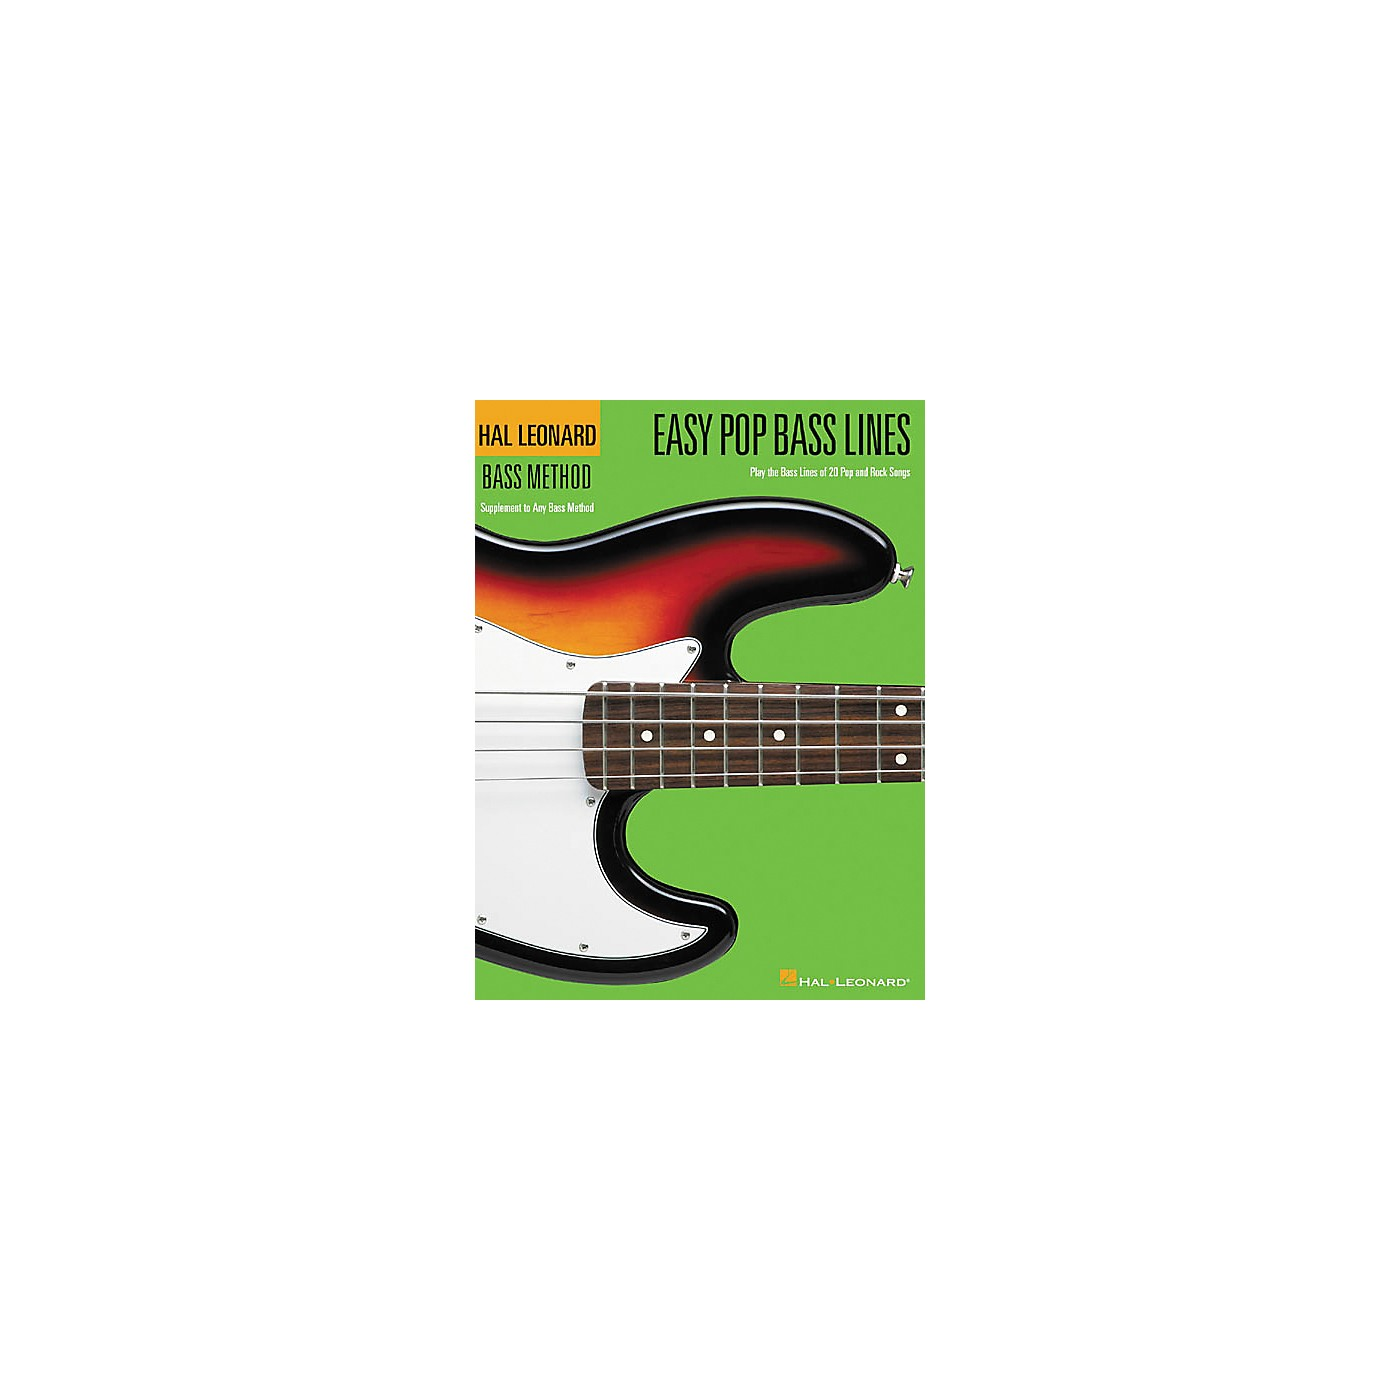 Hal Leonard Easy Pop Bass Lines Bass Method Book thumbnail